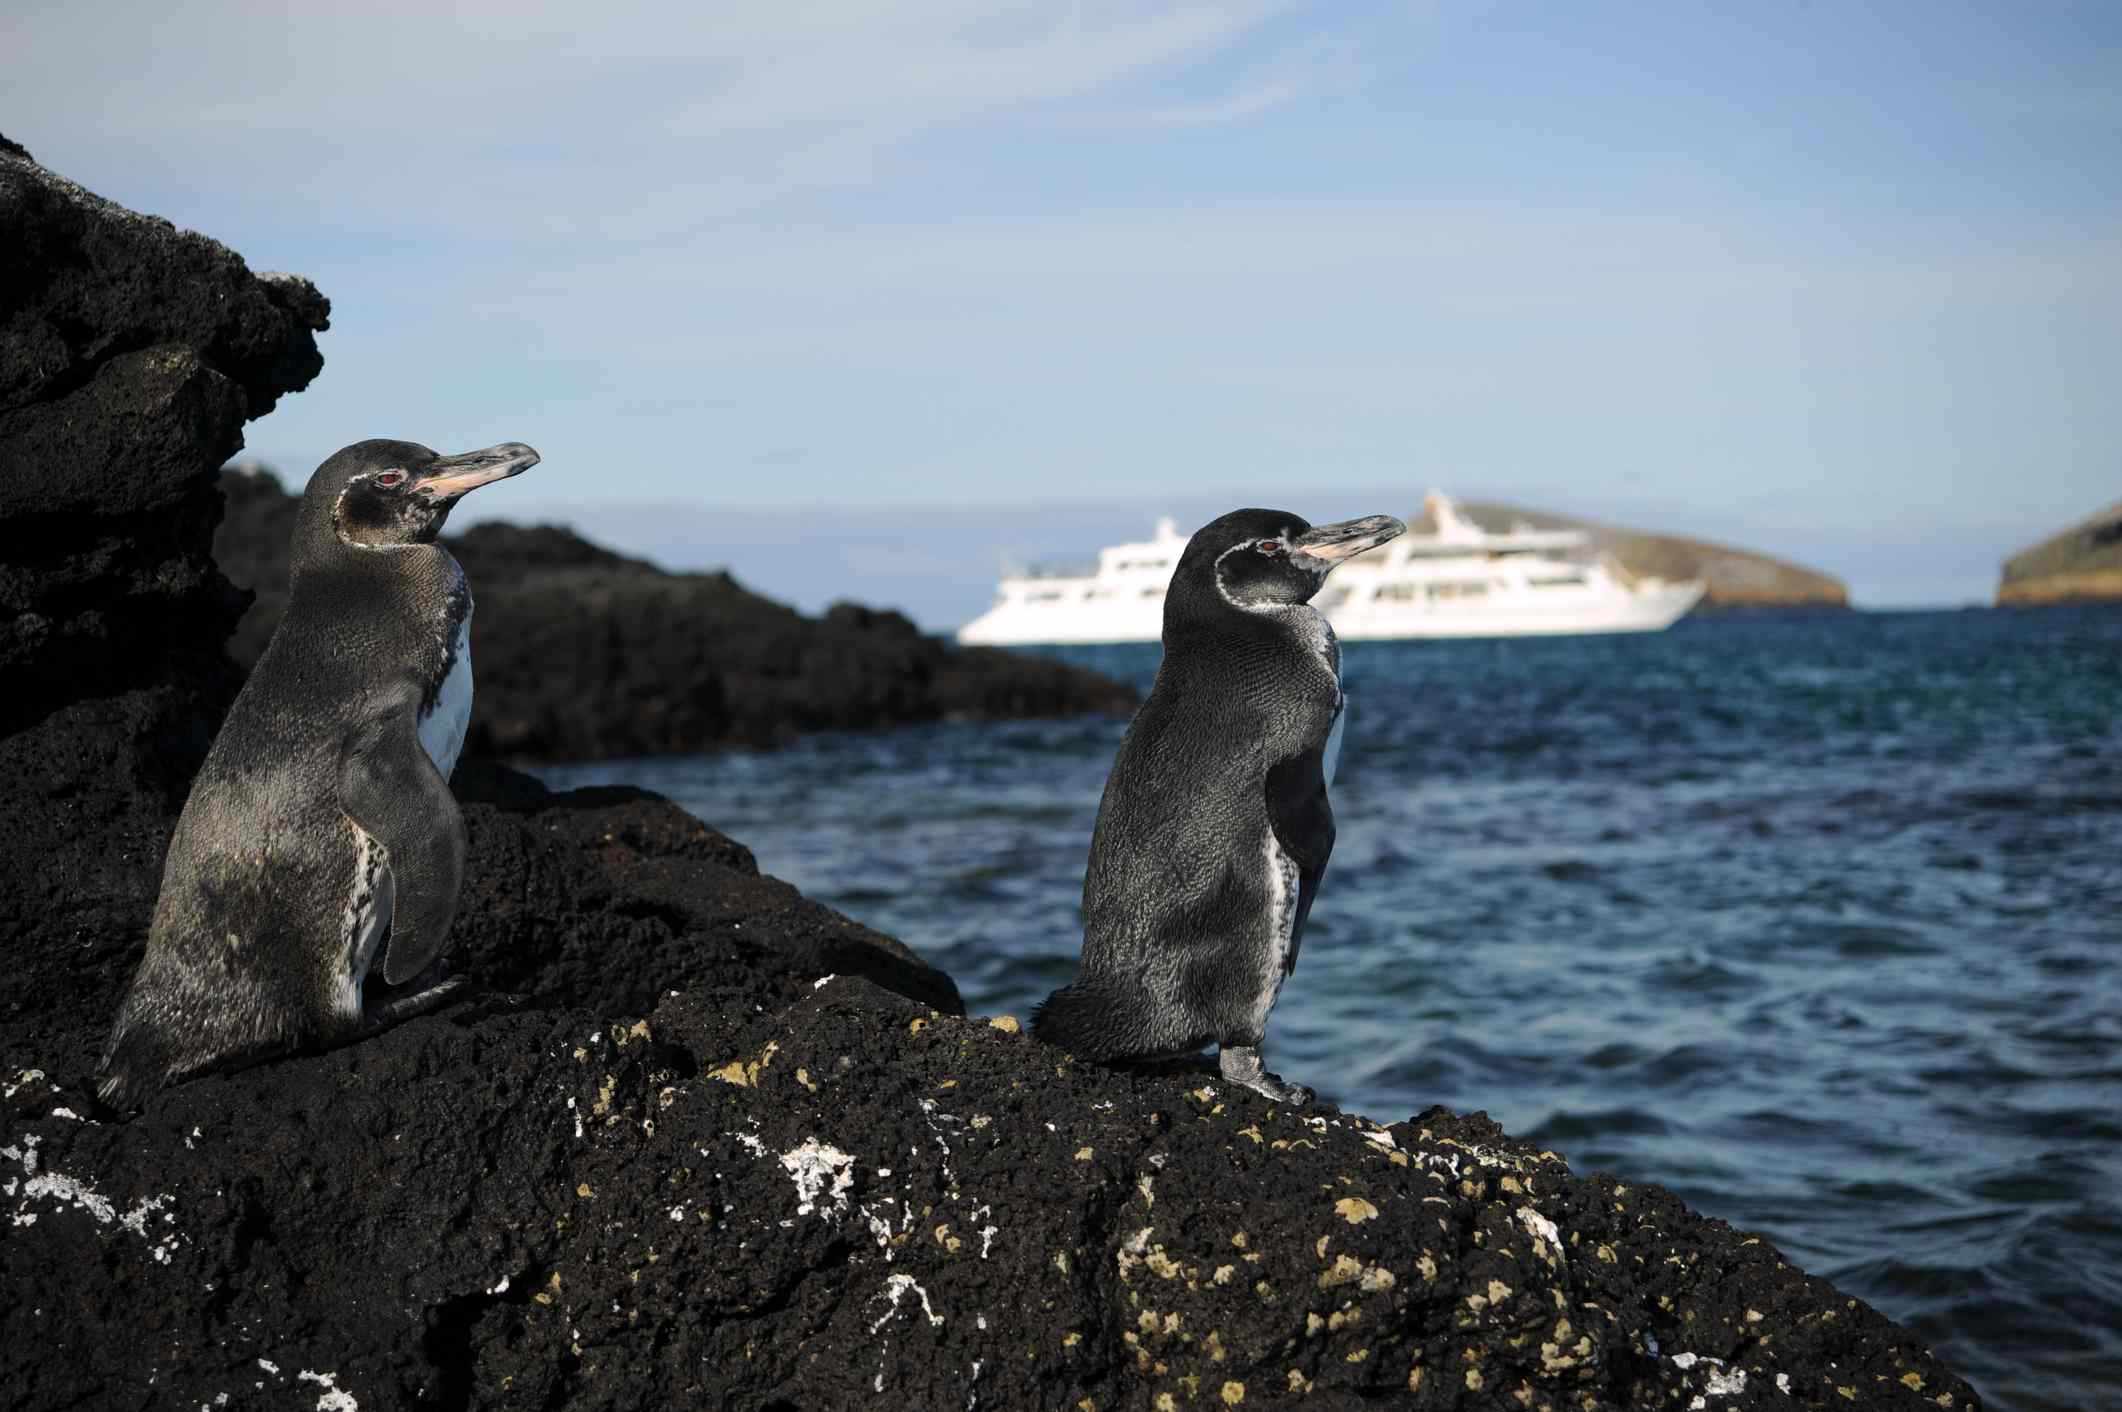 Two Galápagos penguins perched on a rock with a cruise ship in the distance